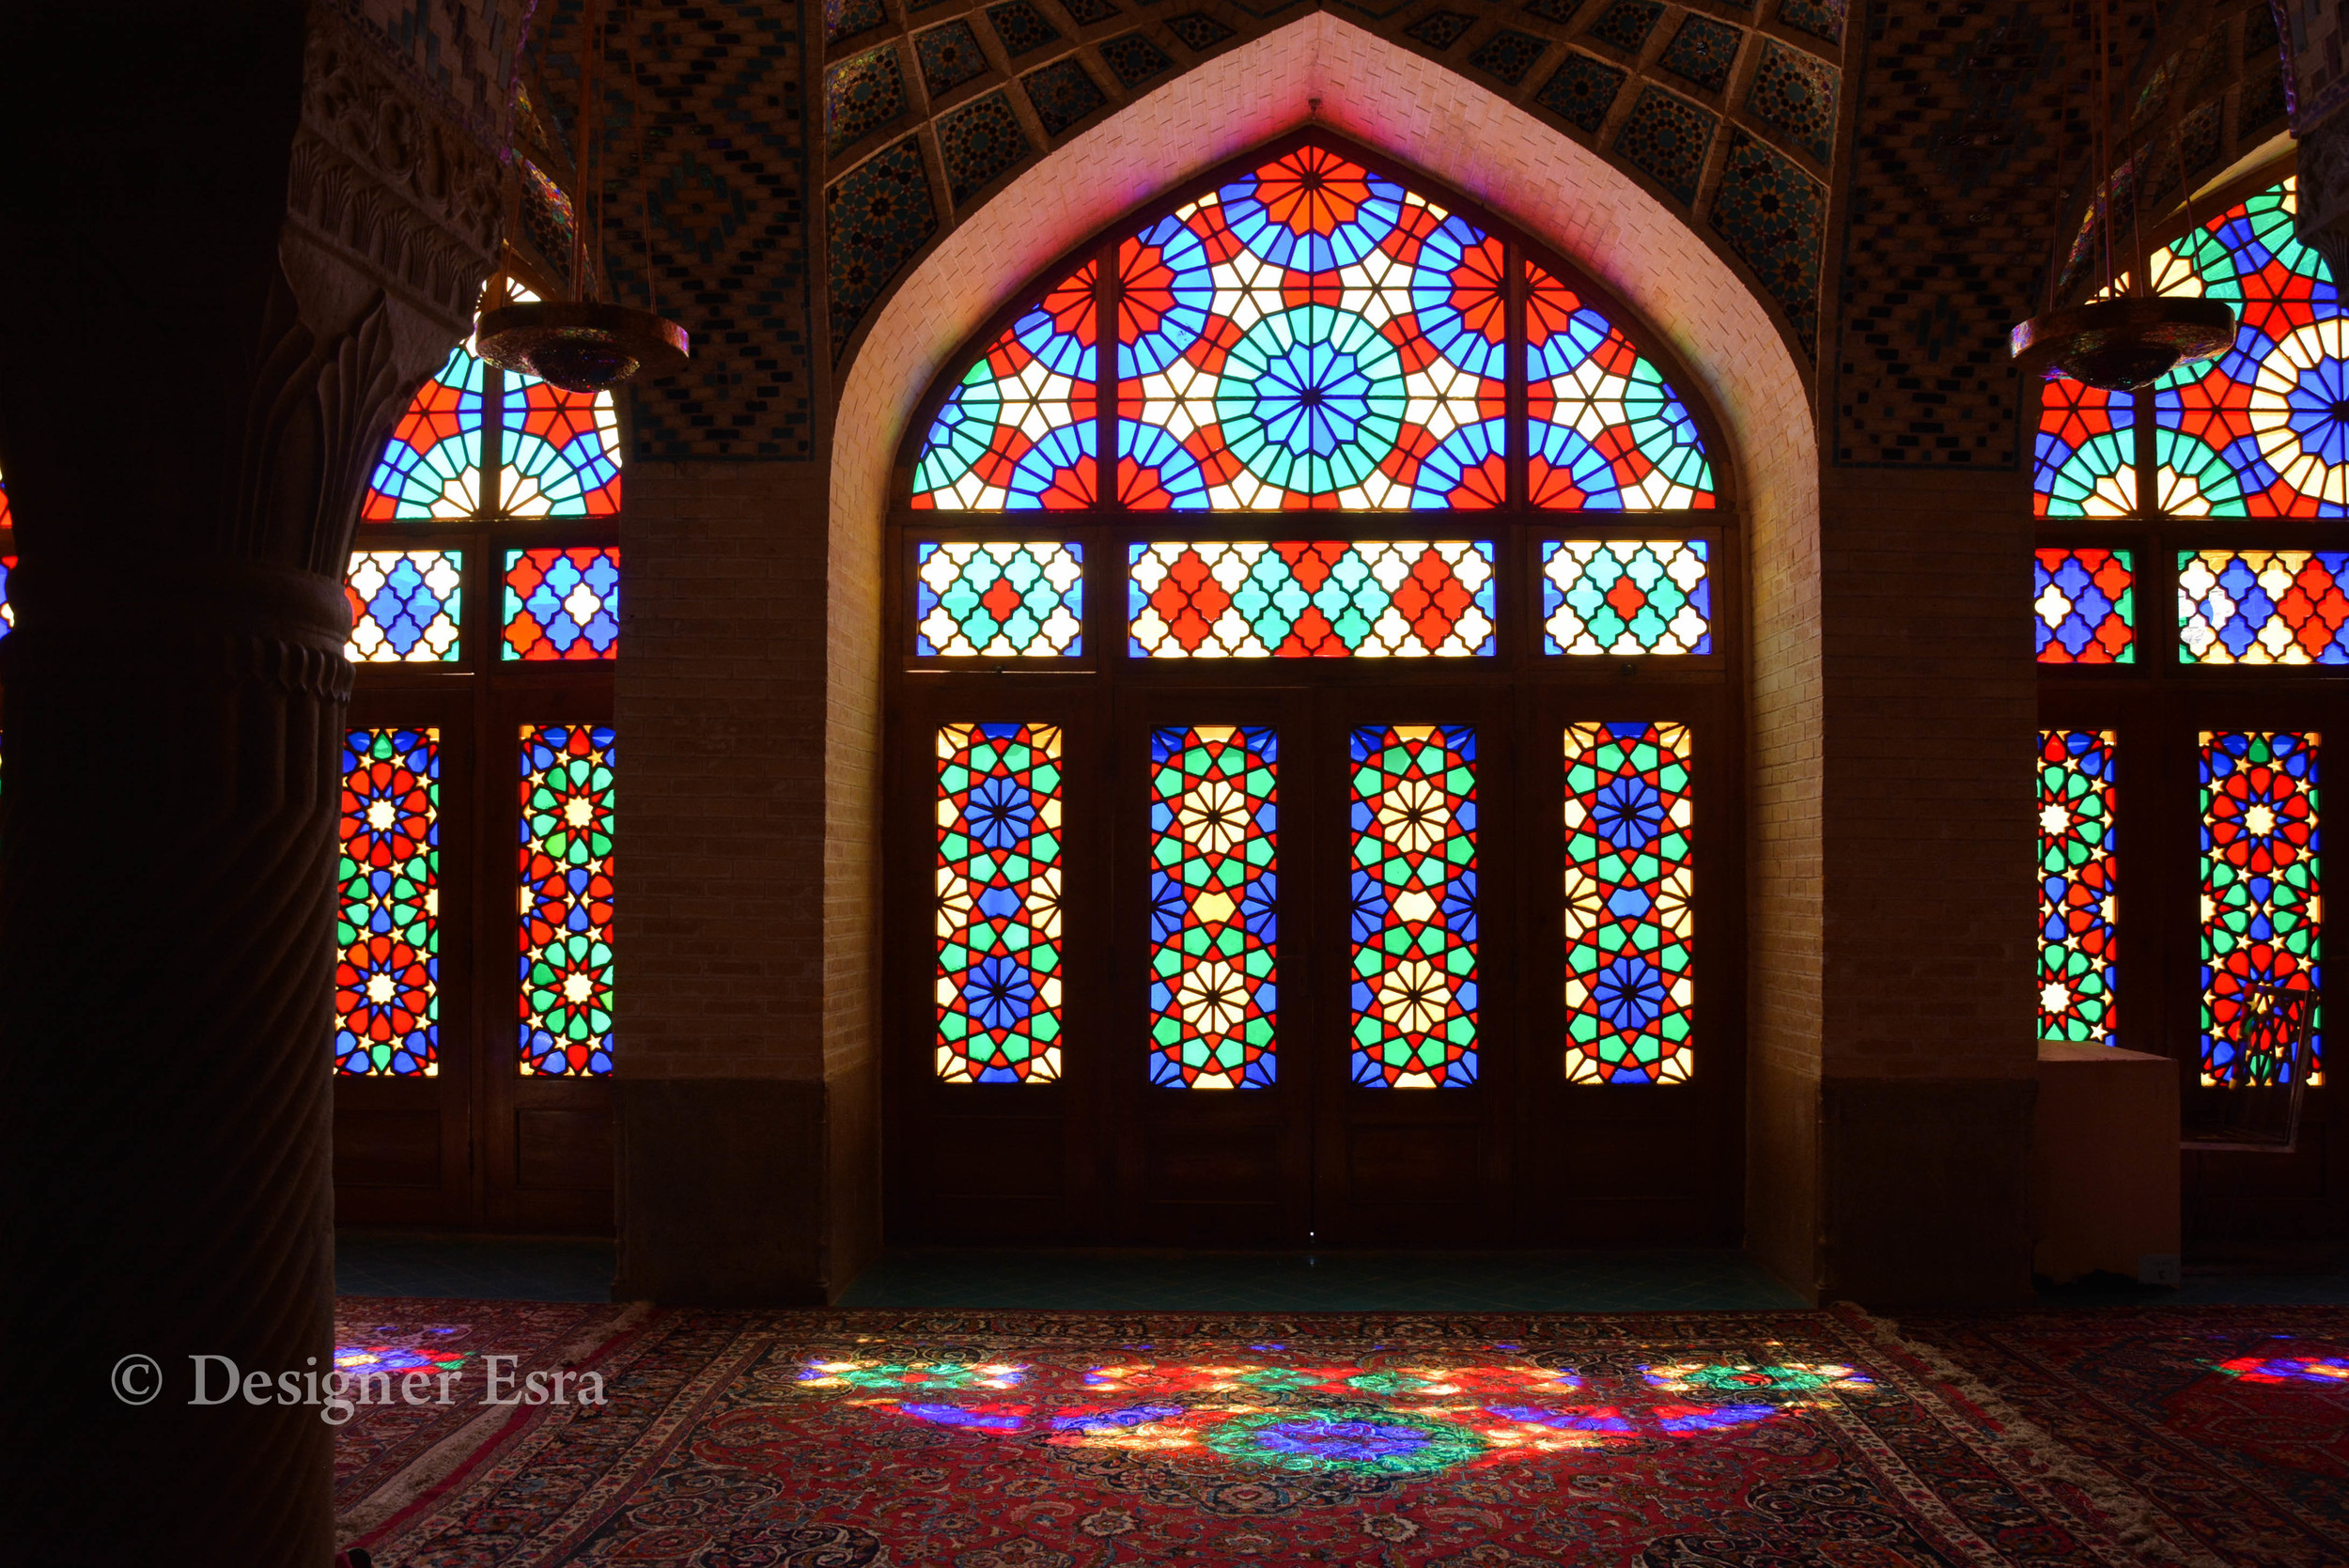 Stain glass reflection in Nasir Almulk Mosque ( Pink Mosque)